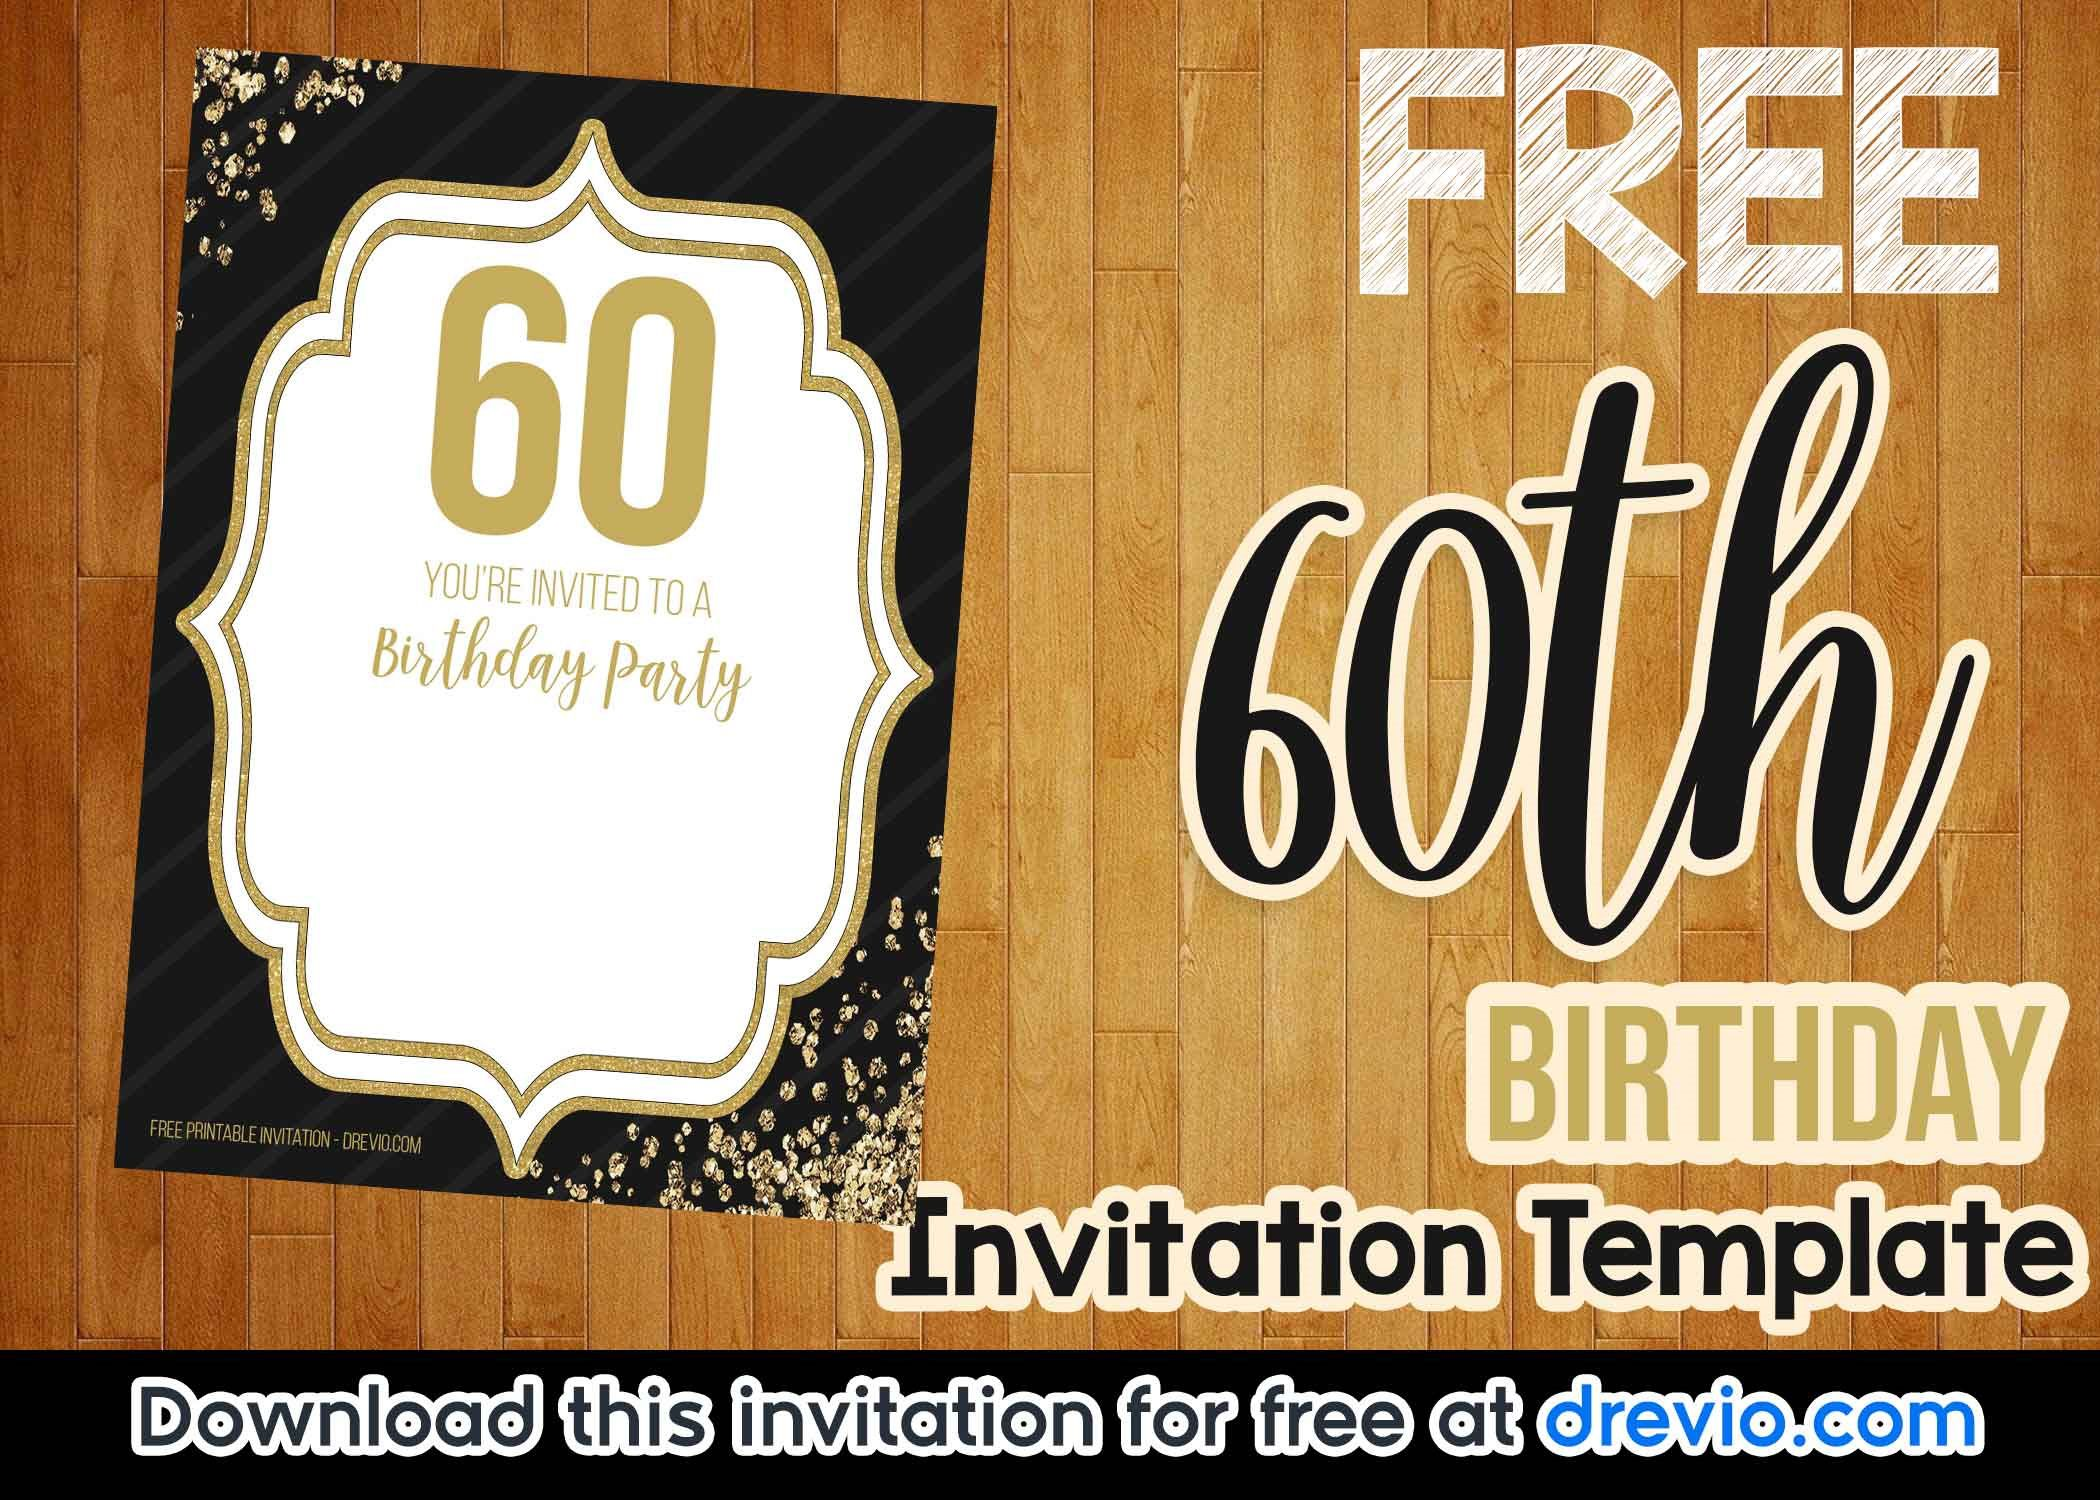 008 Frightening Free 60th Birthday Invitation Template Concept  Templates Surprise Download For Word PartyFull